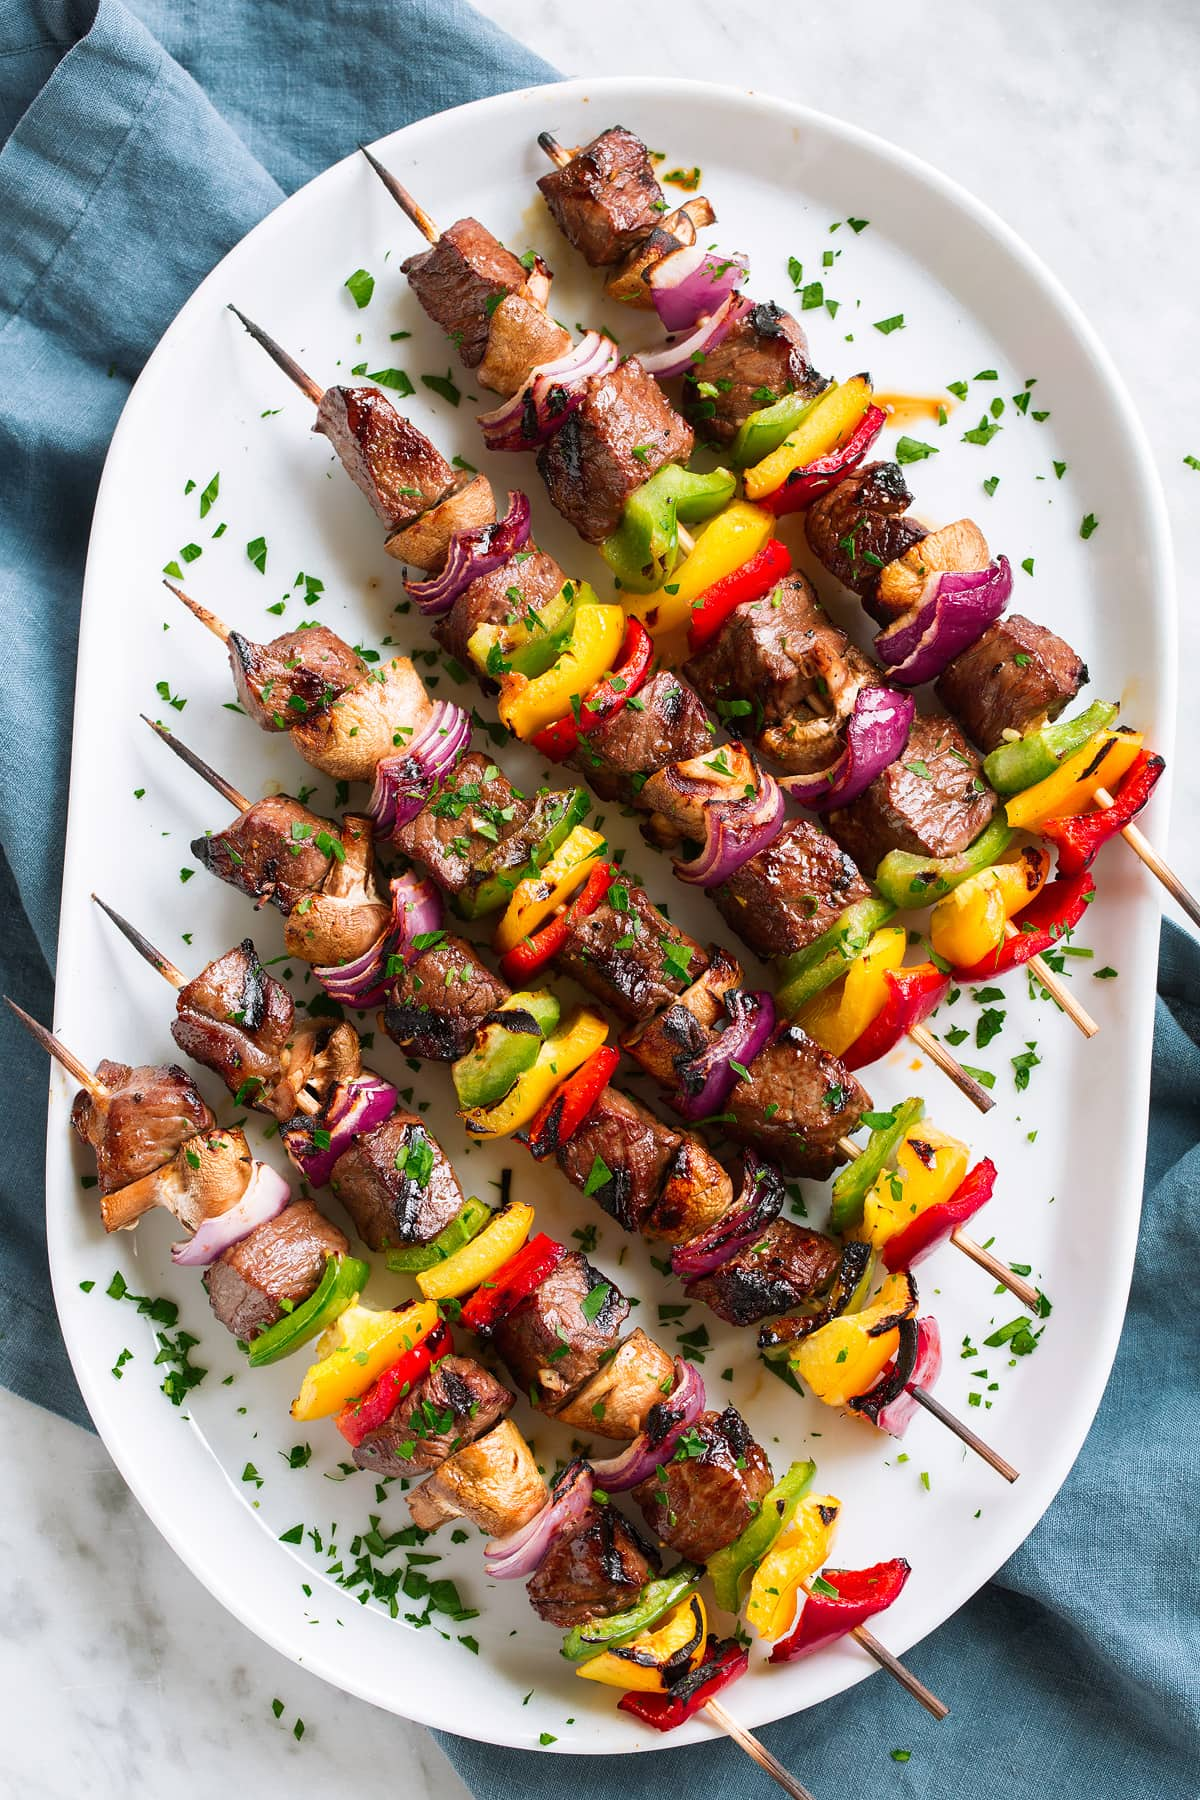 Seven steak kebabs on wooden skewers on a white platter set over a blue cloth on a marble table.